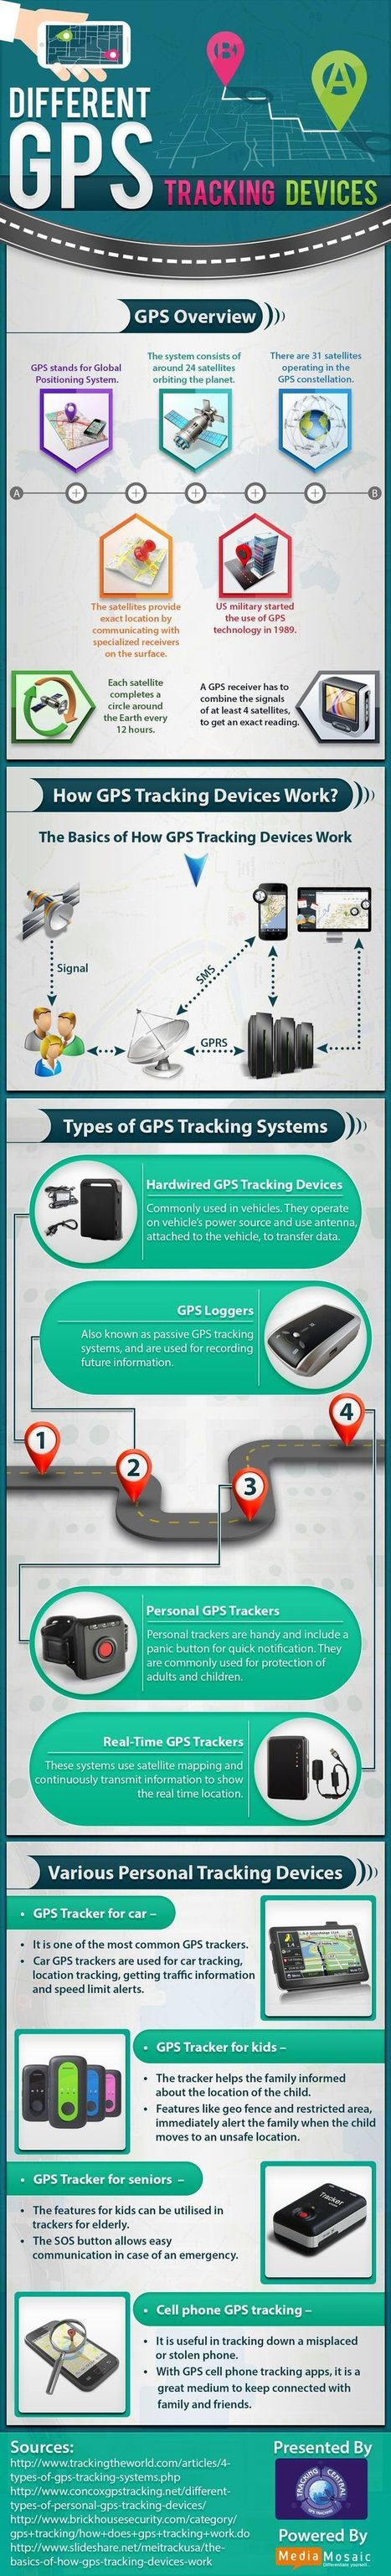 Different GPS Tracking Device | Infographic | Scoop.it